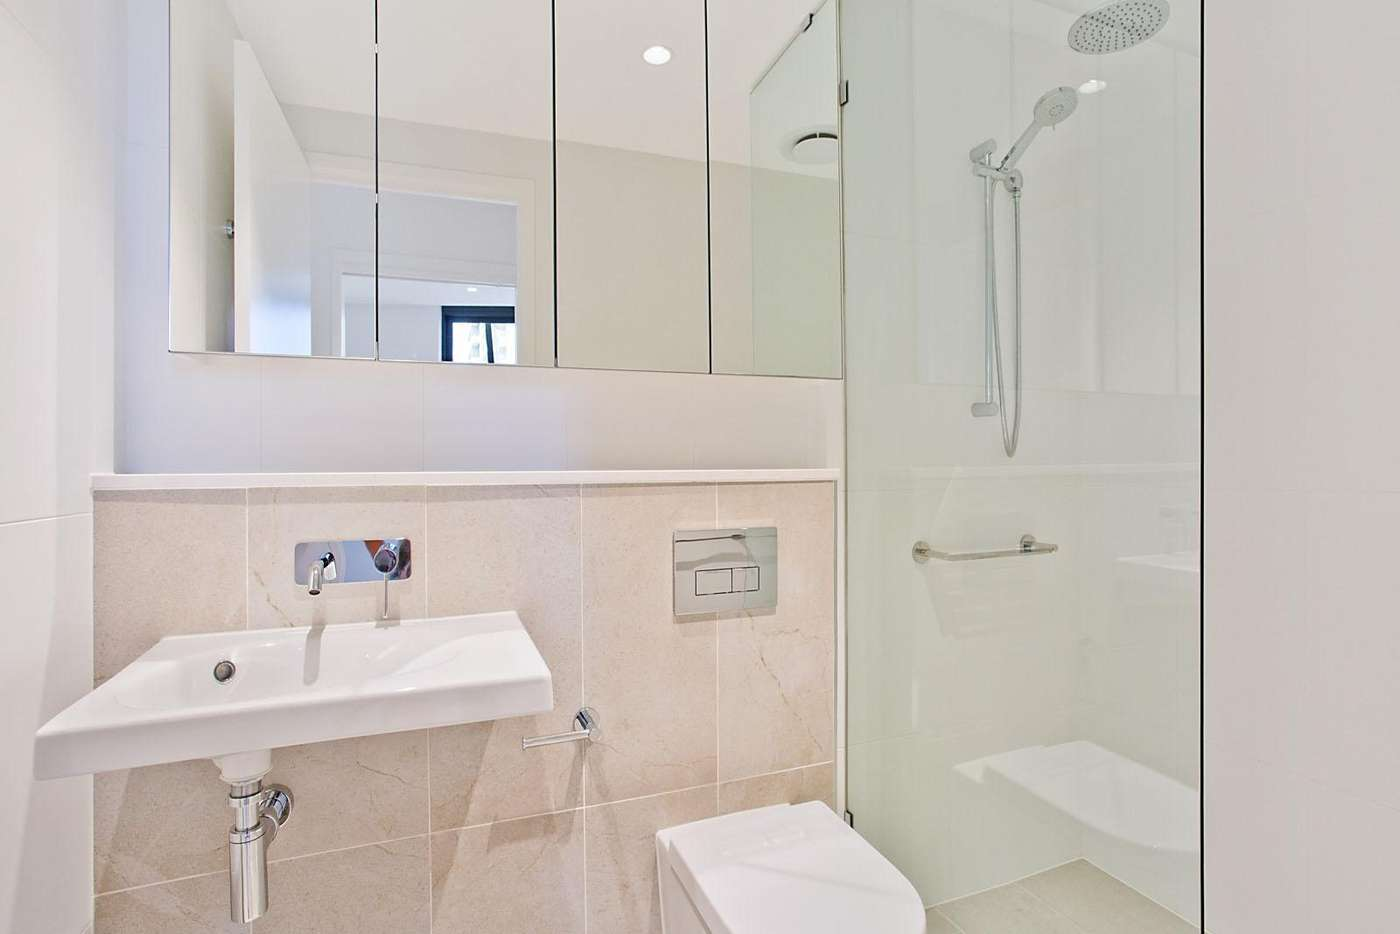 Seventh view of Homely apartment listing, 804/3 Northcliffe Terrace, Surfers Paradise QLD 4217